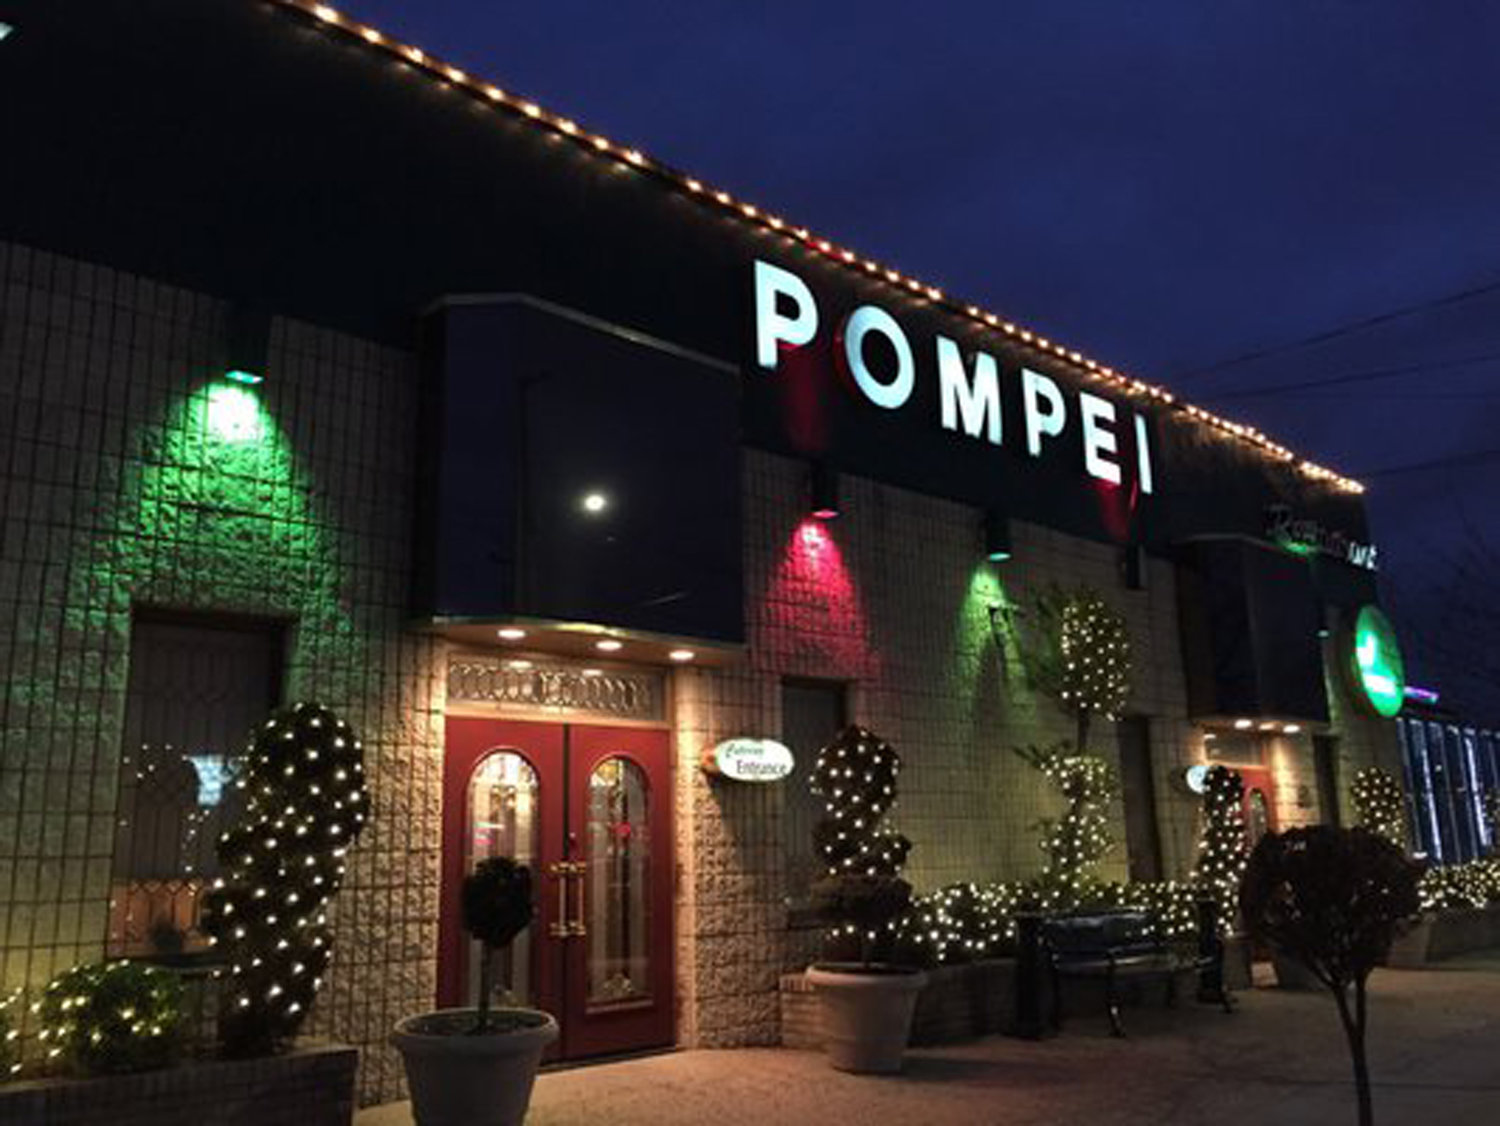 Pompei restaurant, at 401 Hempstead Ave. in West Hempstead, closed in December.